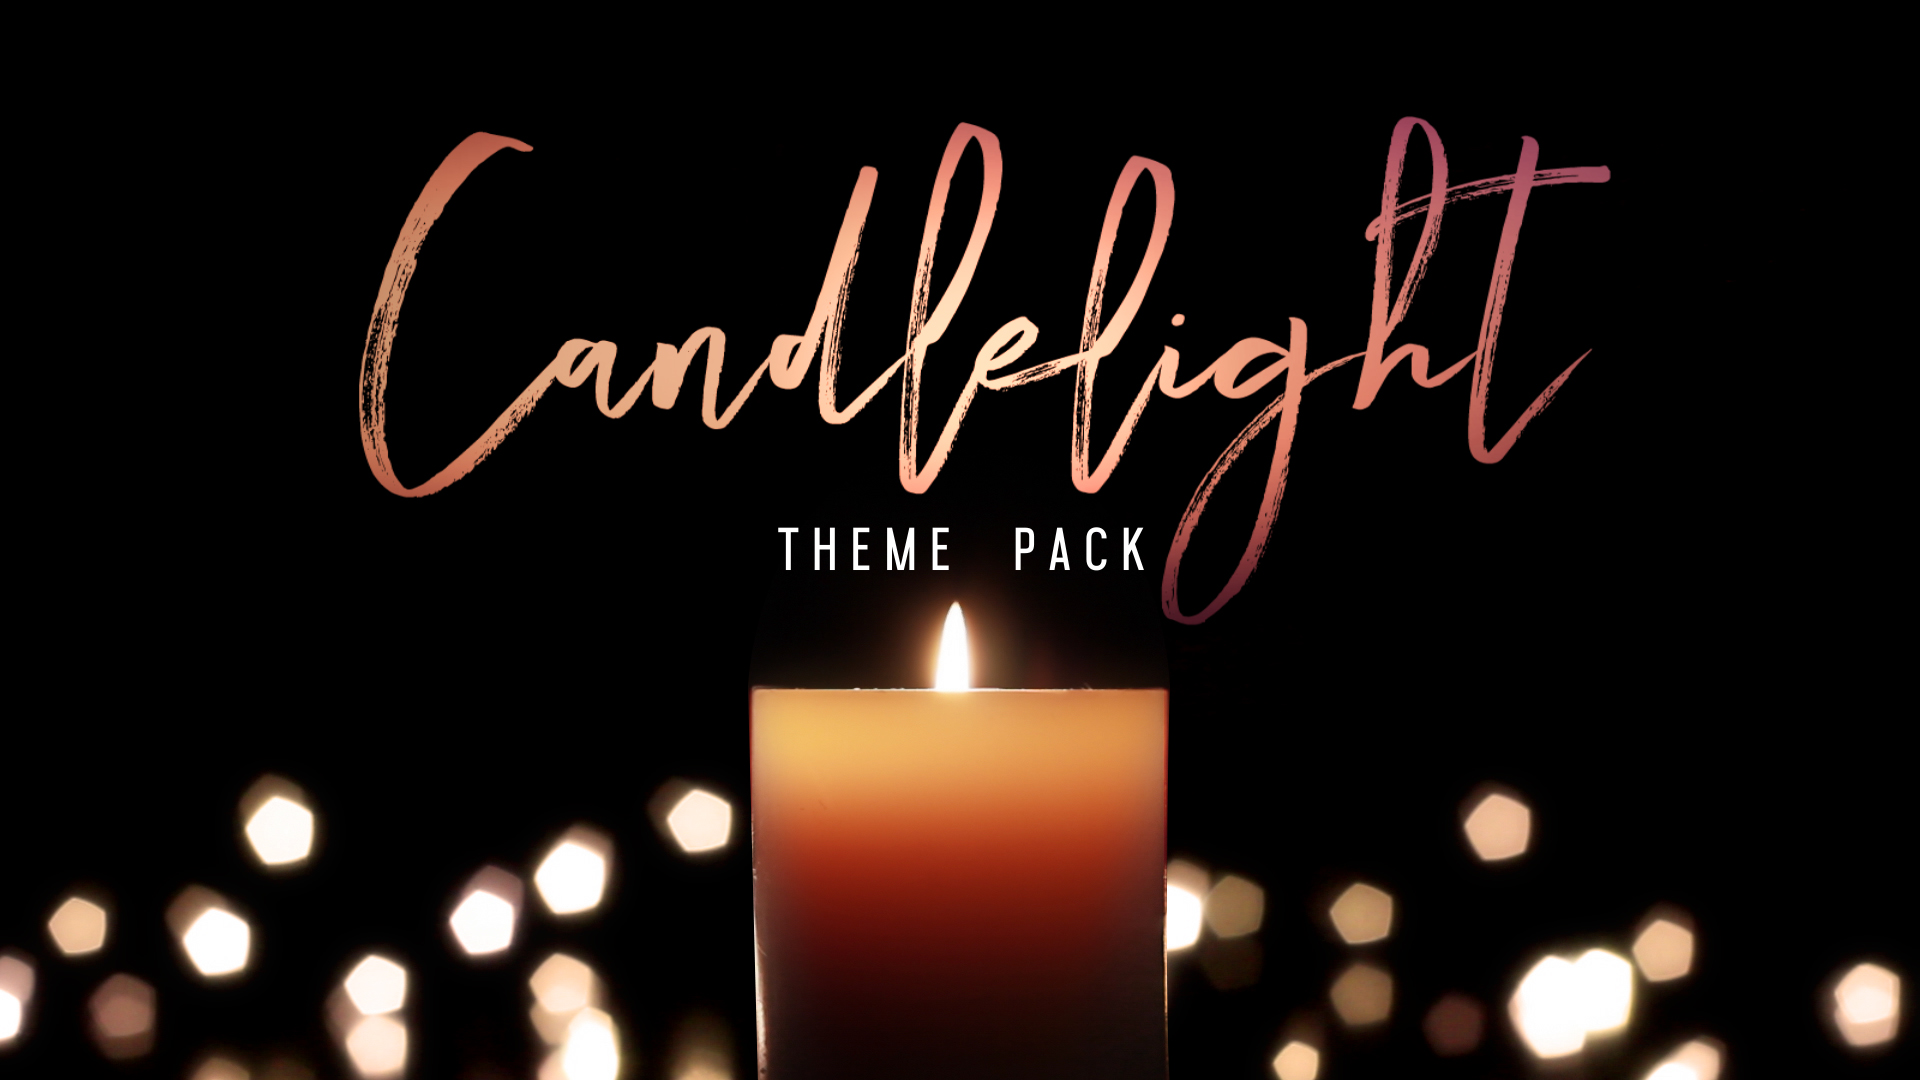 Candlelight Theme Pack The Skit Guys